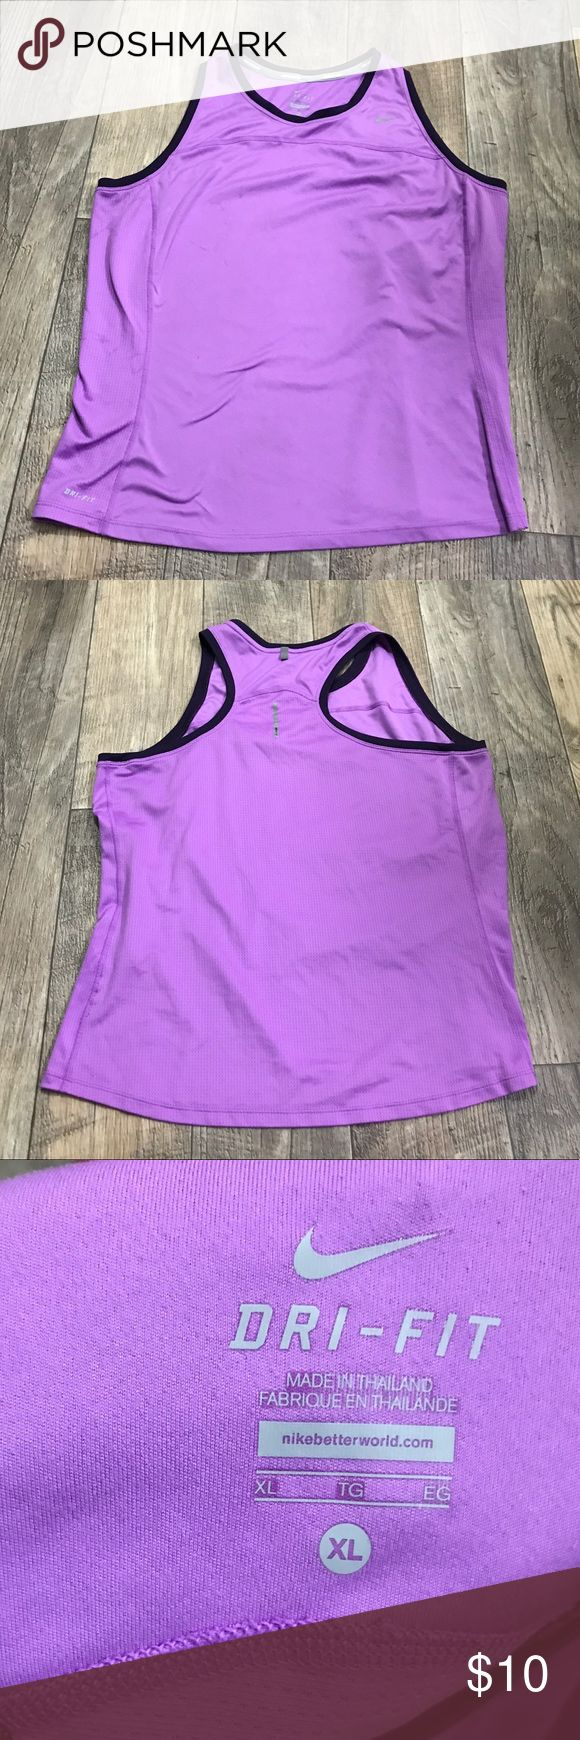 Nike Dri Fit Size XL Purple Fitness Yoga Tank Top This tank top is in great used condition with minimal to no signs of wear. This tank top will look great paired with great workout shorts or capris for warm weather or a great pair of workout pants as well. Either way you choose to pair this tank top it will be a great addition to your exercise/workout/yoga wardrobe. Nike Tops Tank Tops